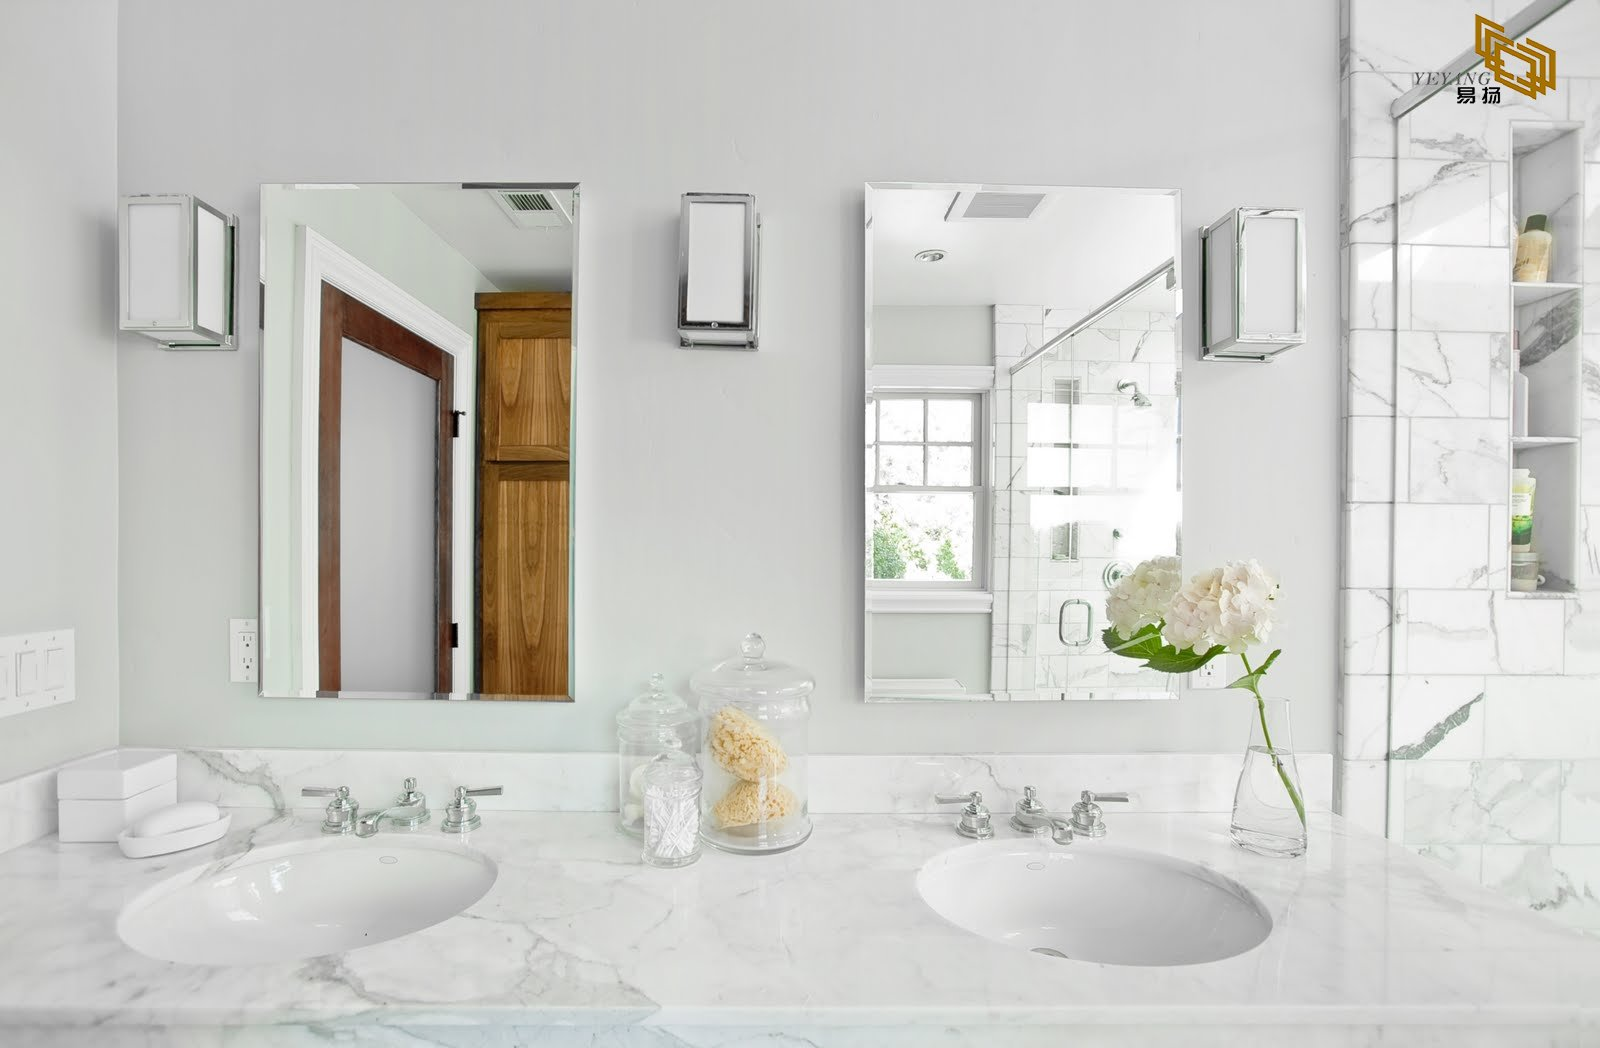 White Carrara Marble Bathroom Vanity Tops With Faucet And Ceramic Sinks Yqw 110029c